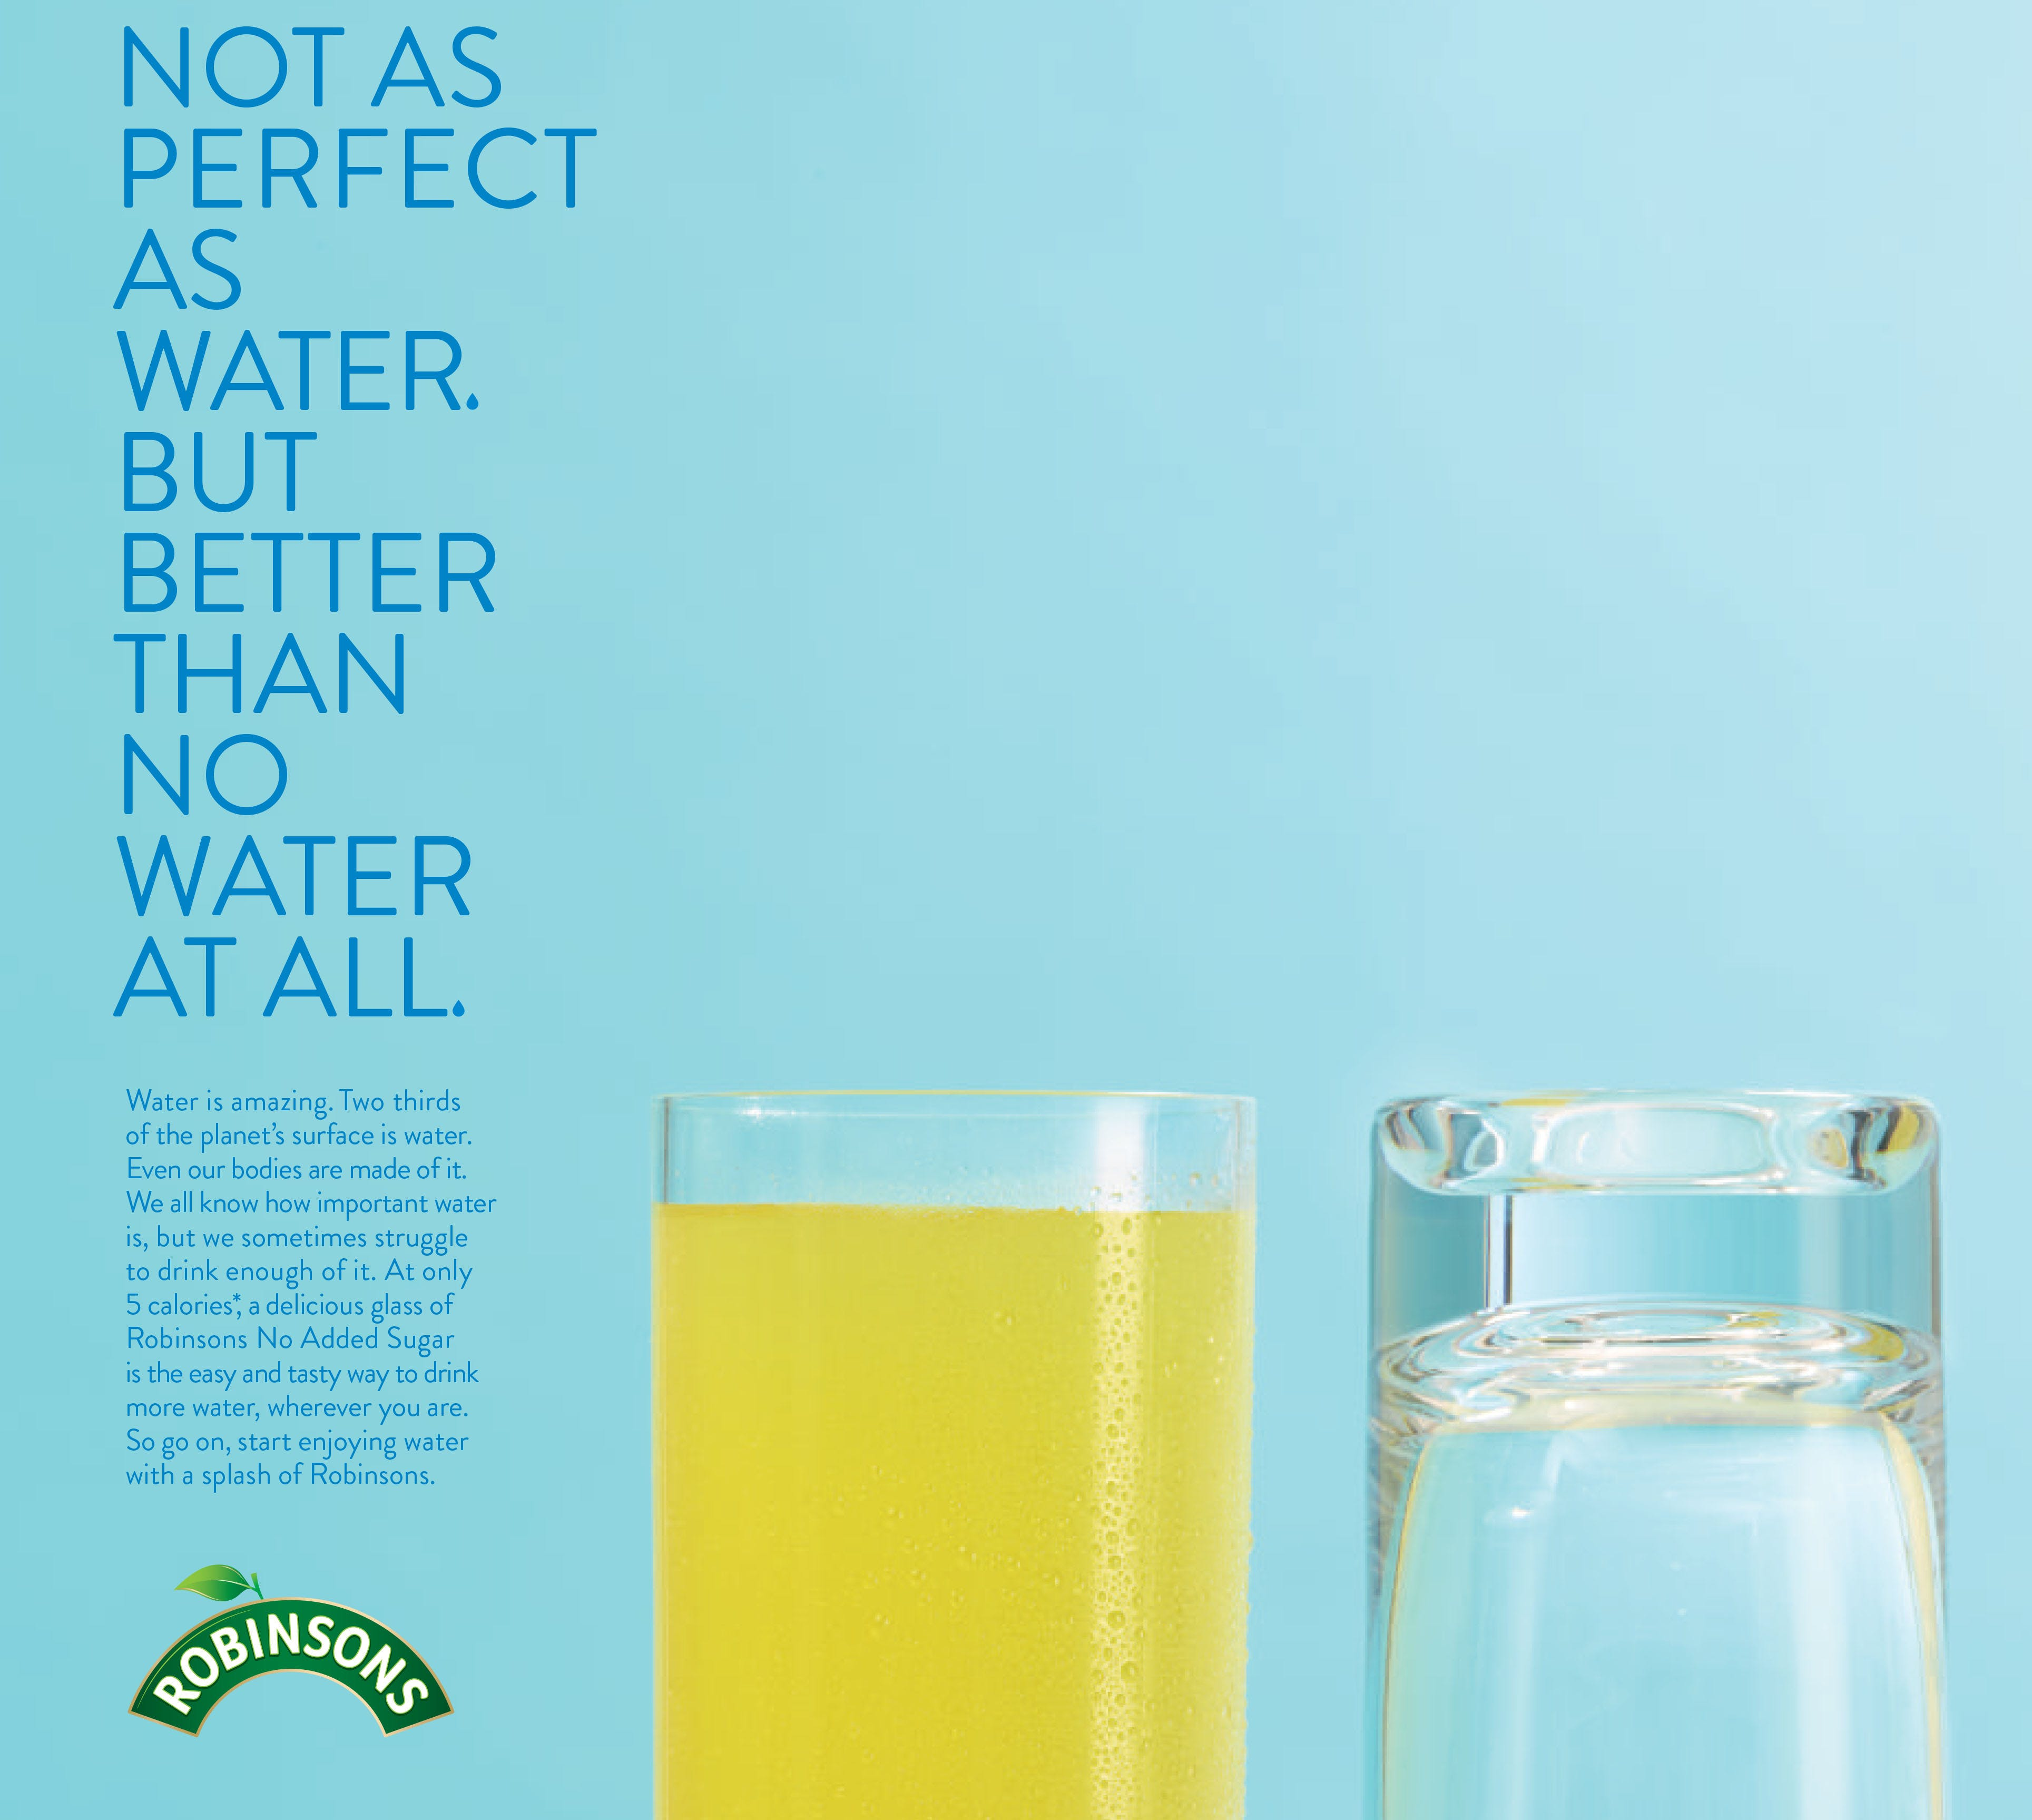 42518_DRINK_MORE_WATER_540x340_glasses.indd